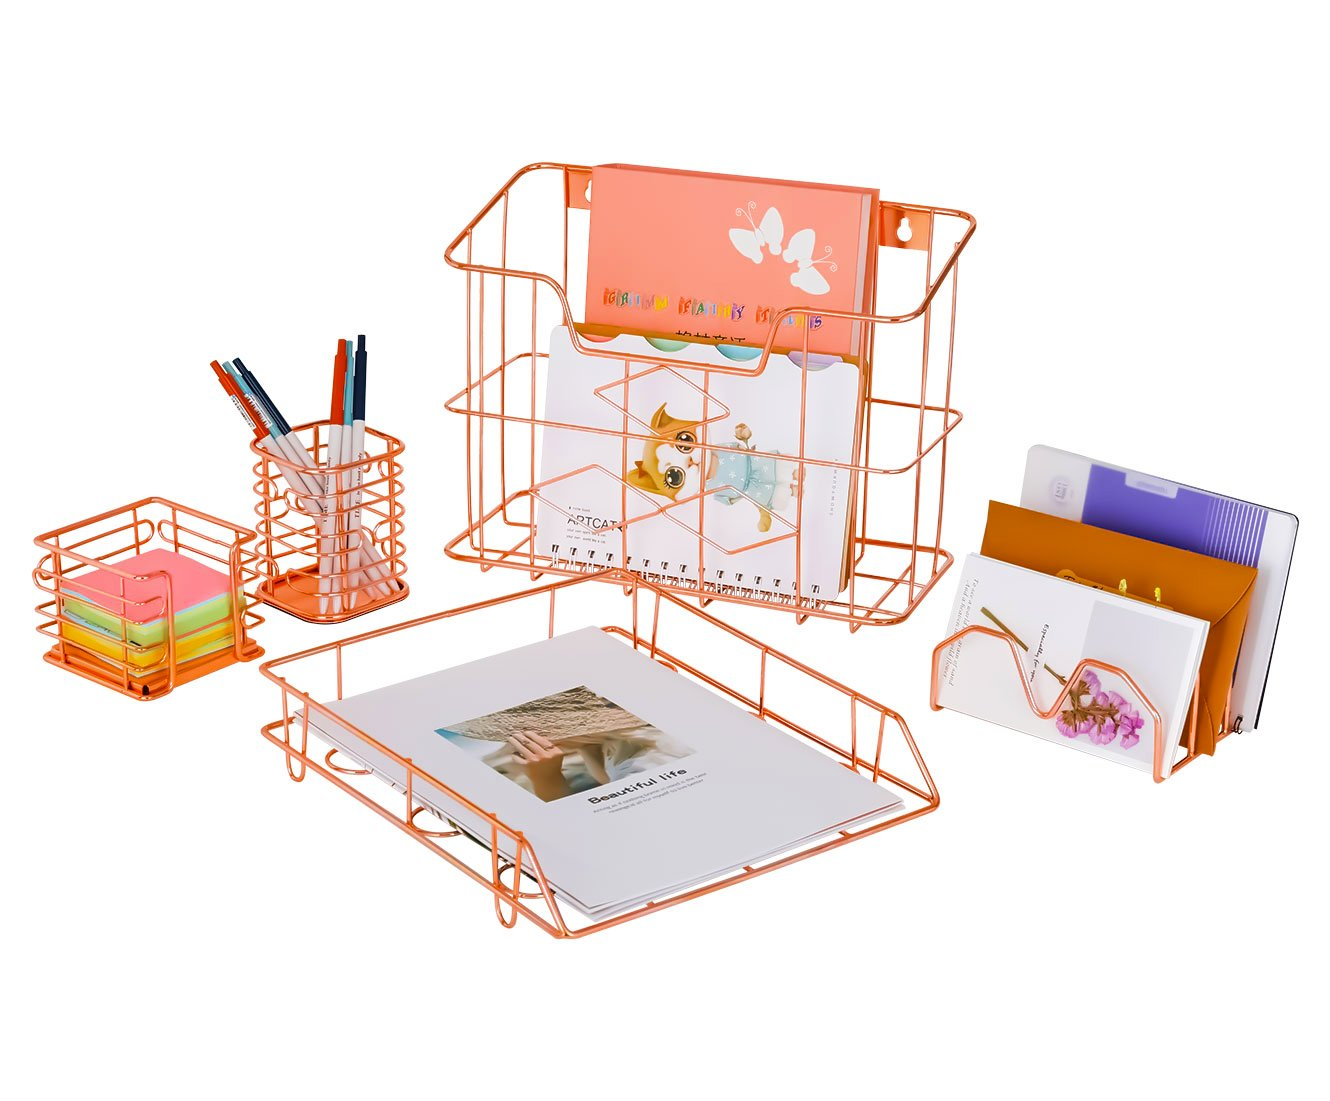 PAG Rose Gold Office Supplies 5 in 1 Desk Organizer Set - Hanging File Organizer, File Tray, Letter Sorter, Pencil Holder and Sticky Note Holder